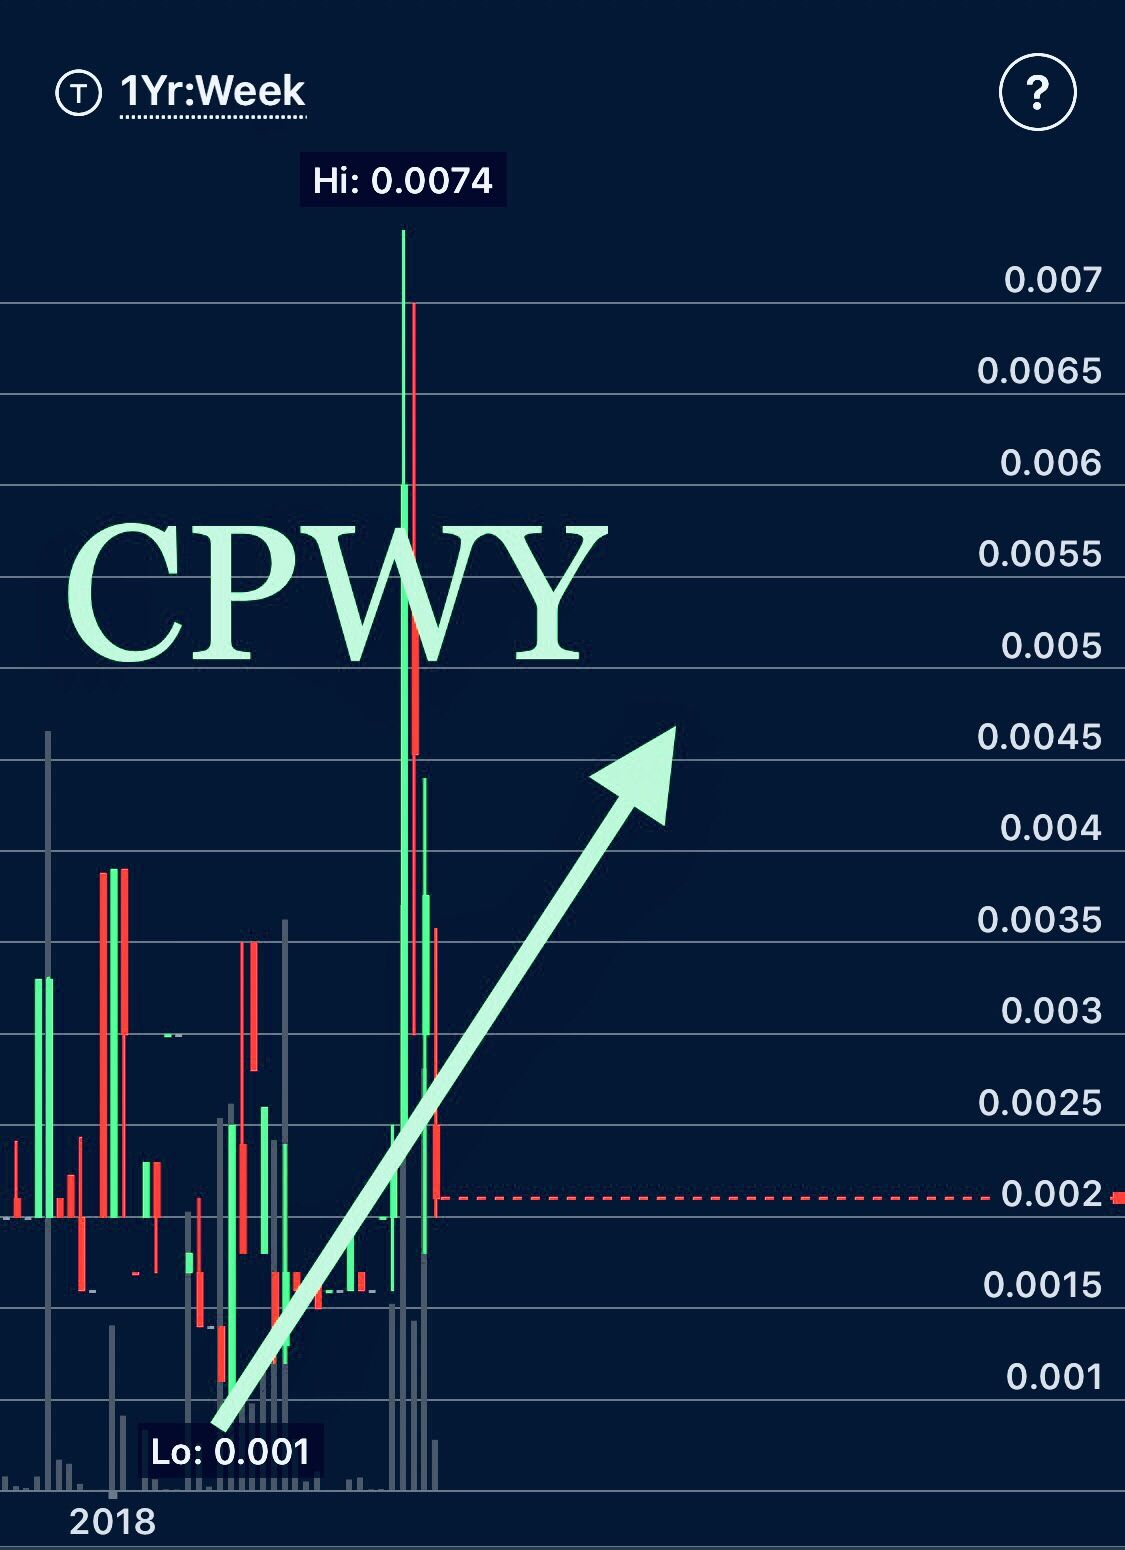 Cpwy Is Going Open Up Nicely Don T Miss This Company And Their